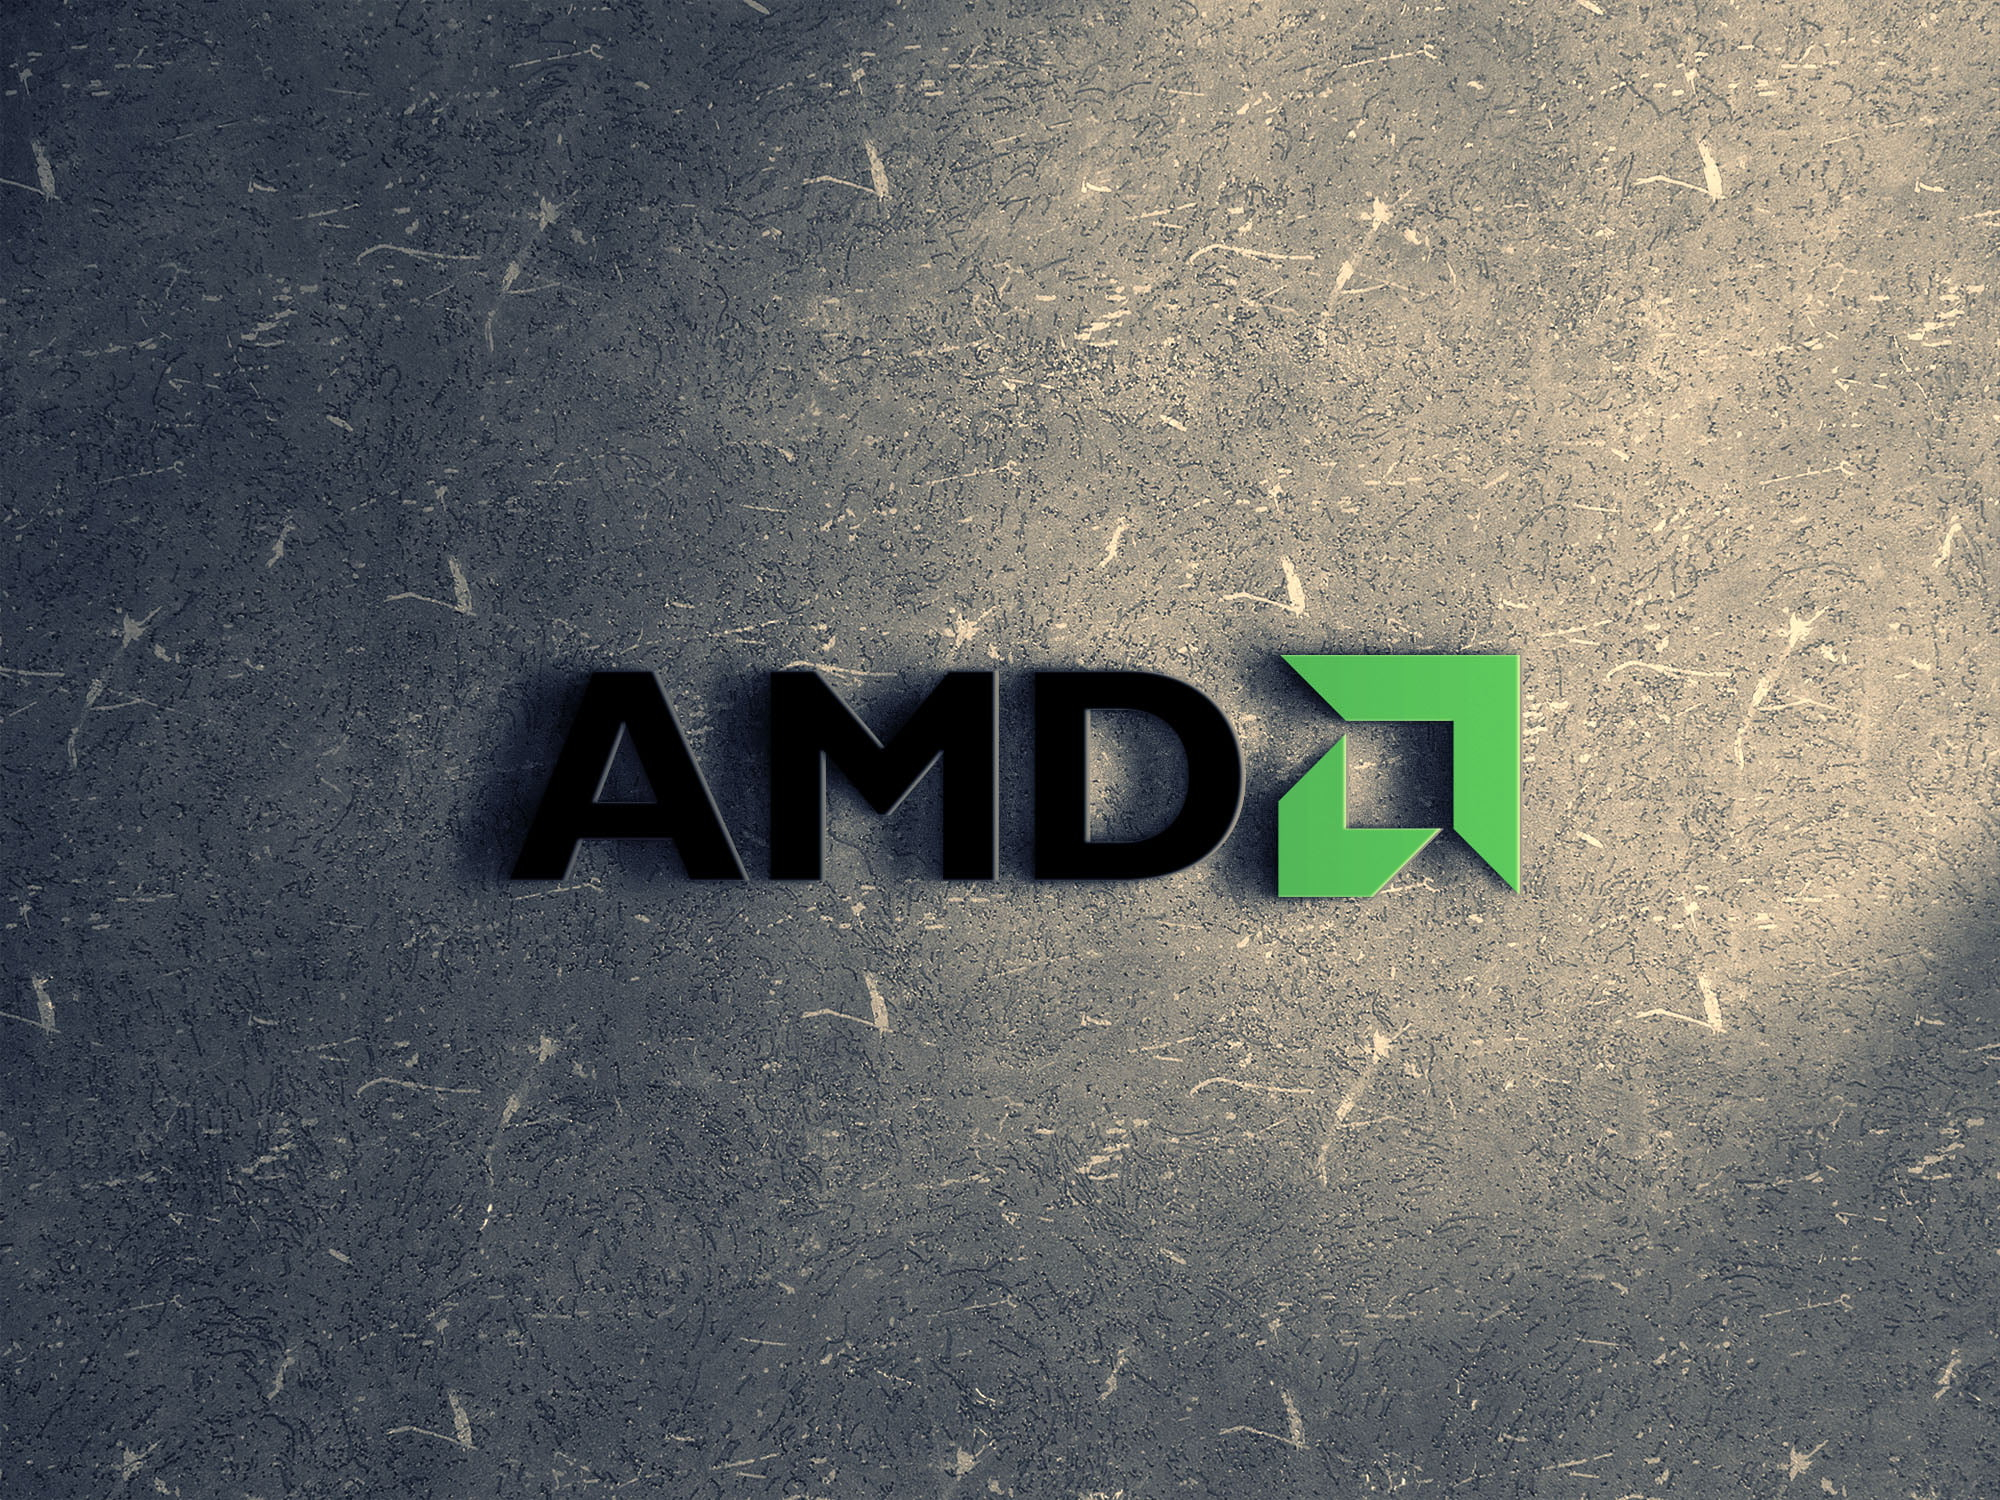 amd logo on ceramic wall mockup